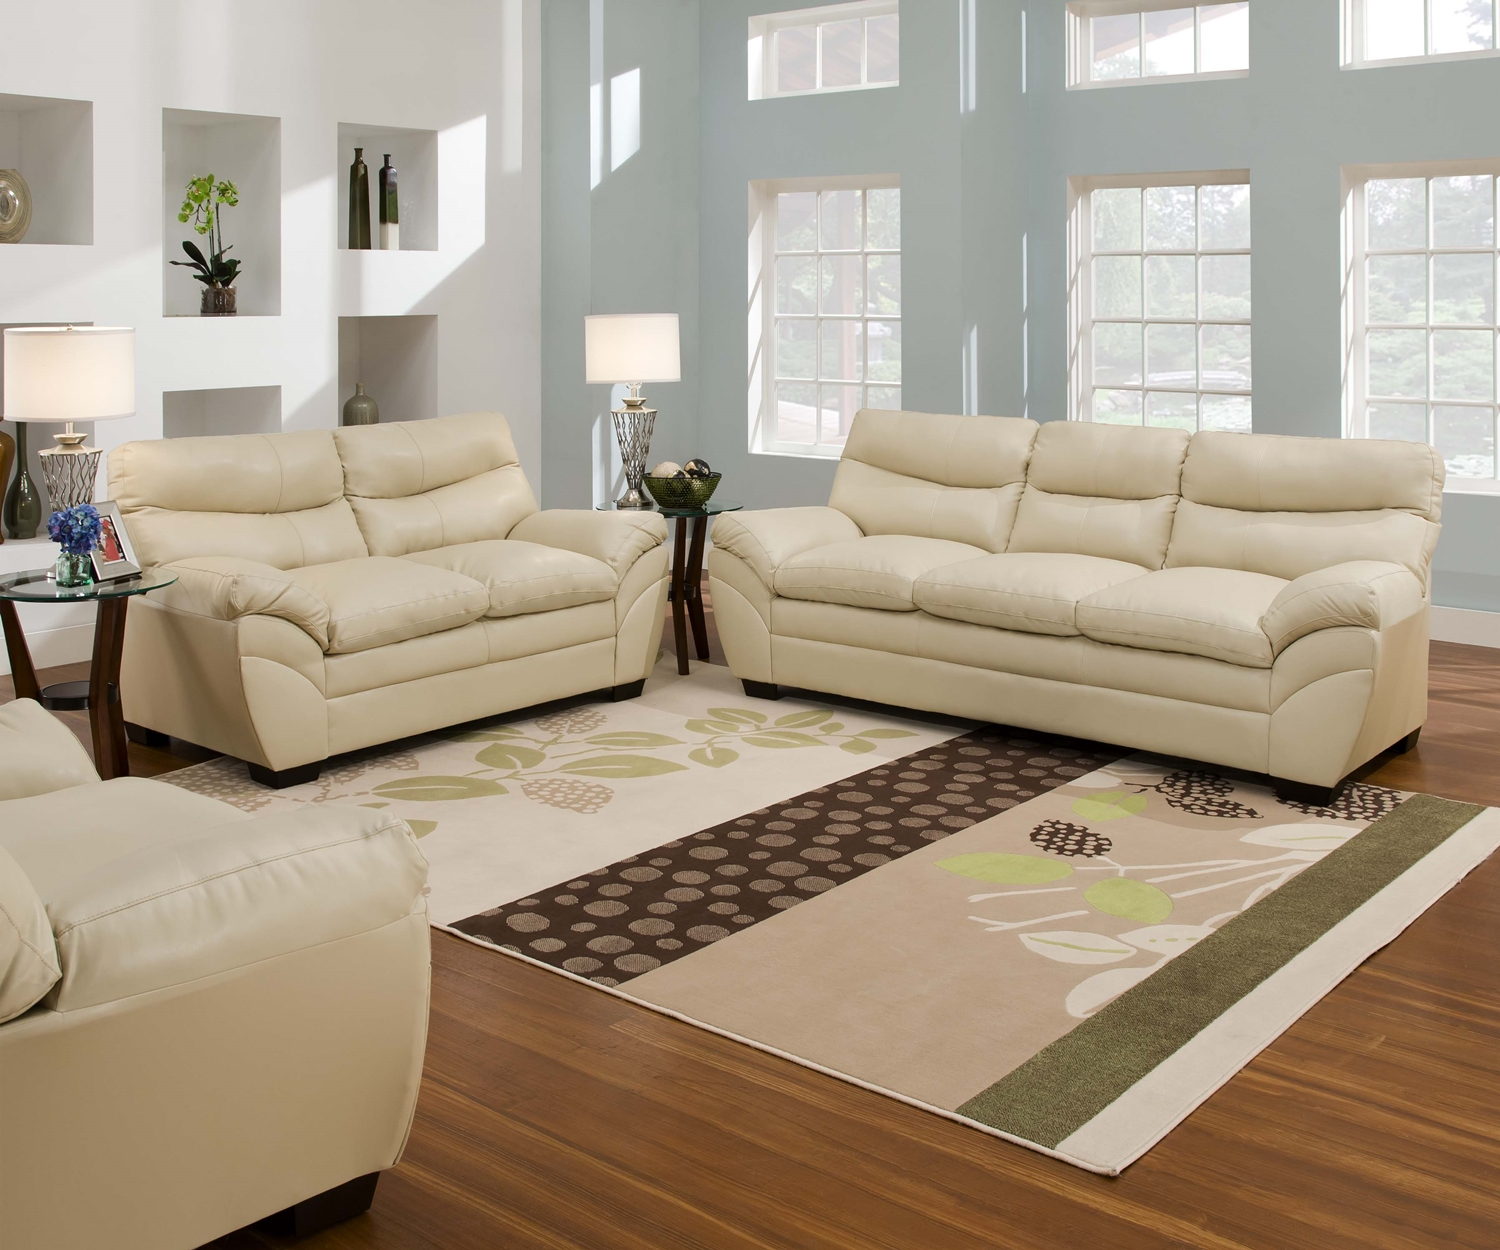 Casual Contemporary Cream Bonded Leather Sofa Set Living Room Furniture